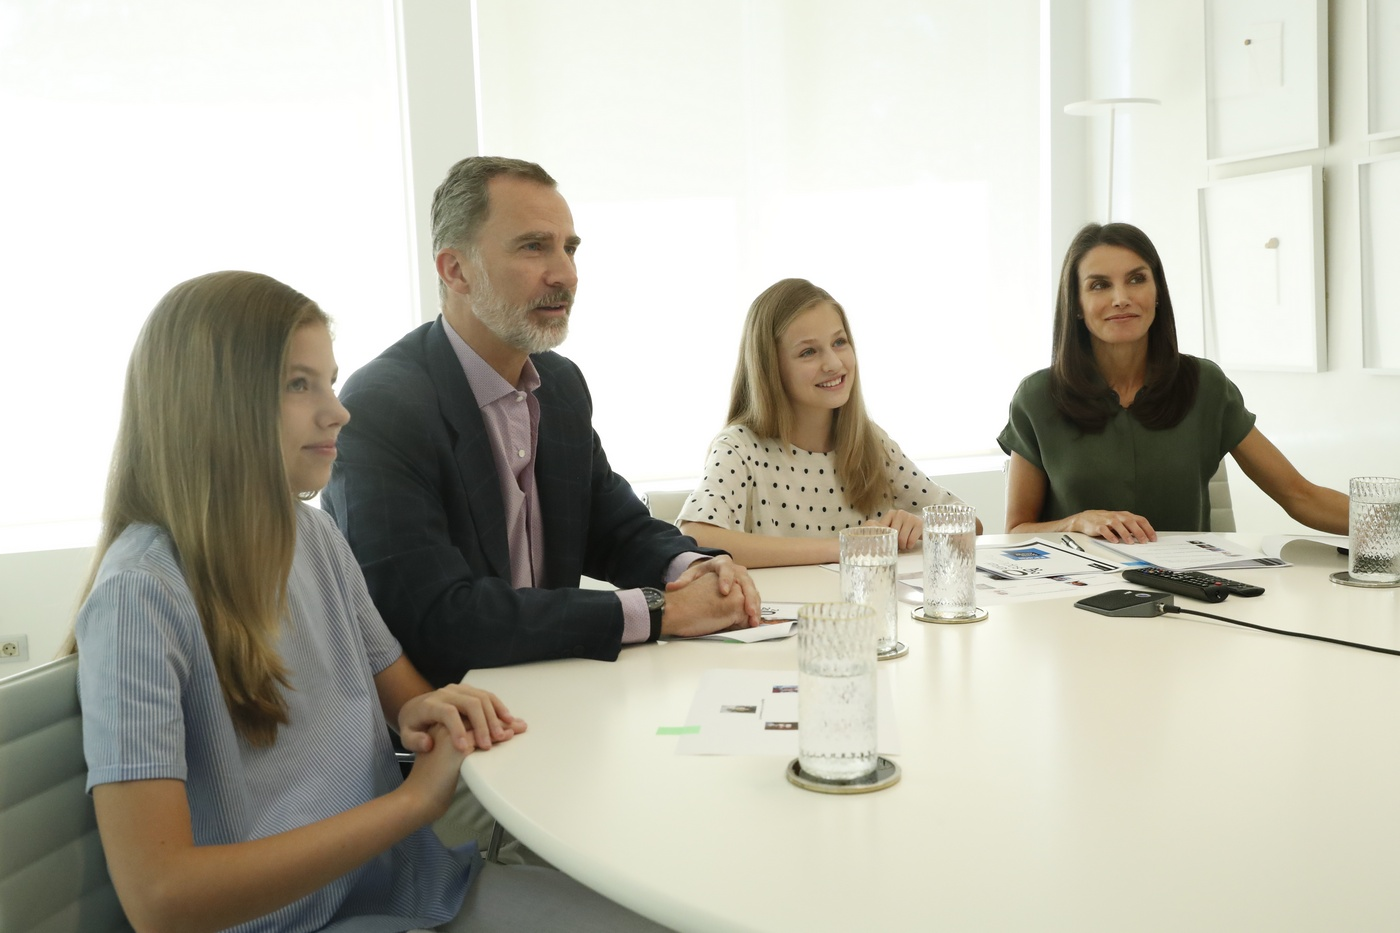 King Felipe and Queen Letizia of Spain along with the Princess of Asturias and Girona and the Infanta Doña Sofía during the video conference with the FPdGi